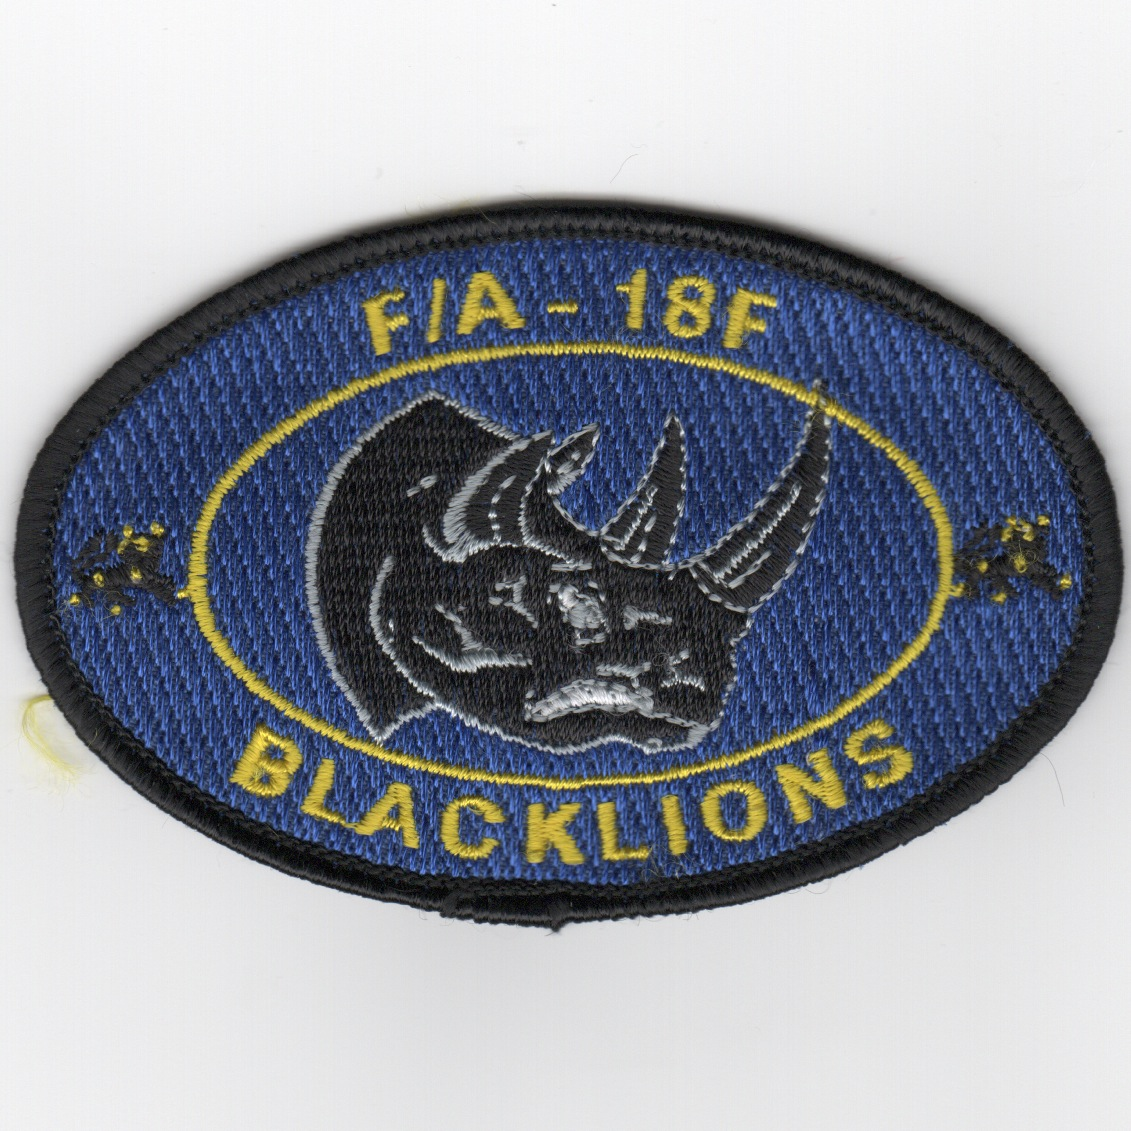 VFA-213 A/C Oval Patch (Blue)